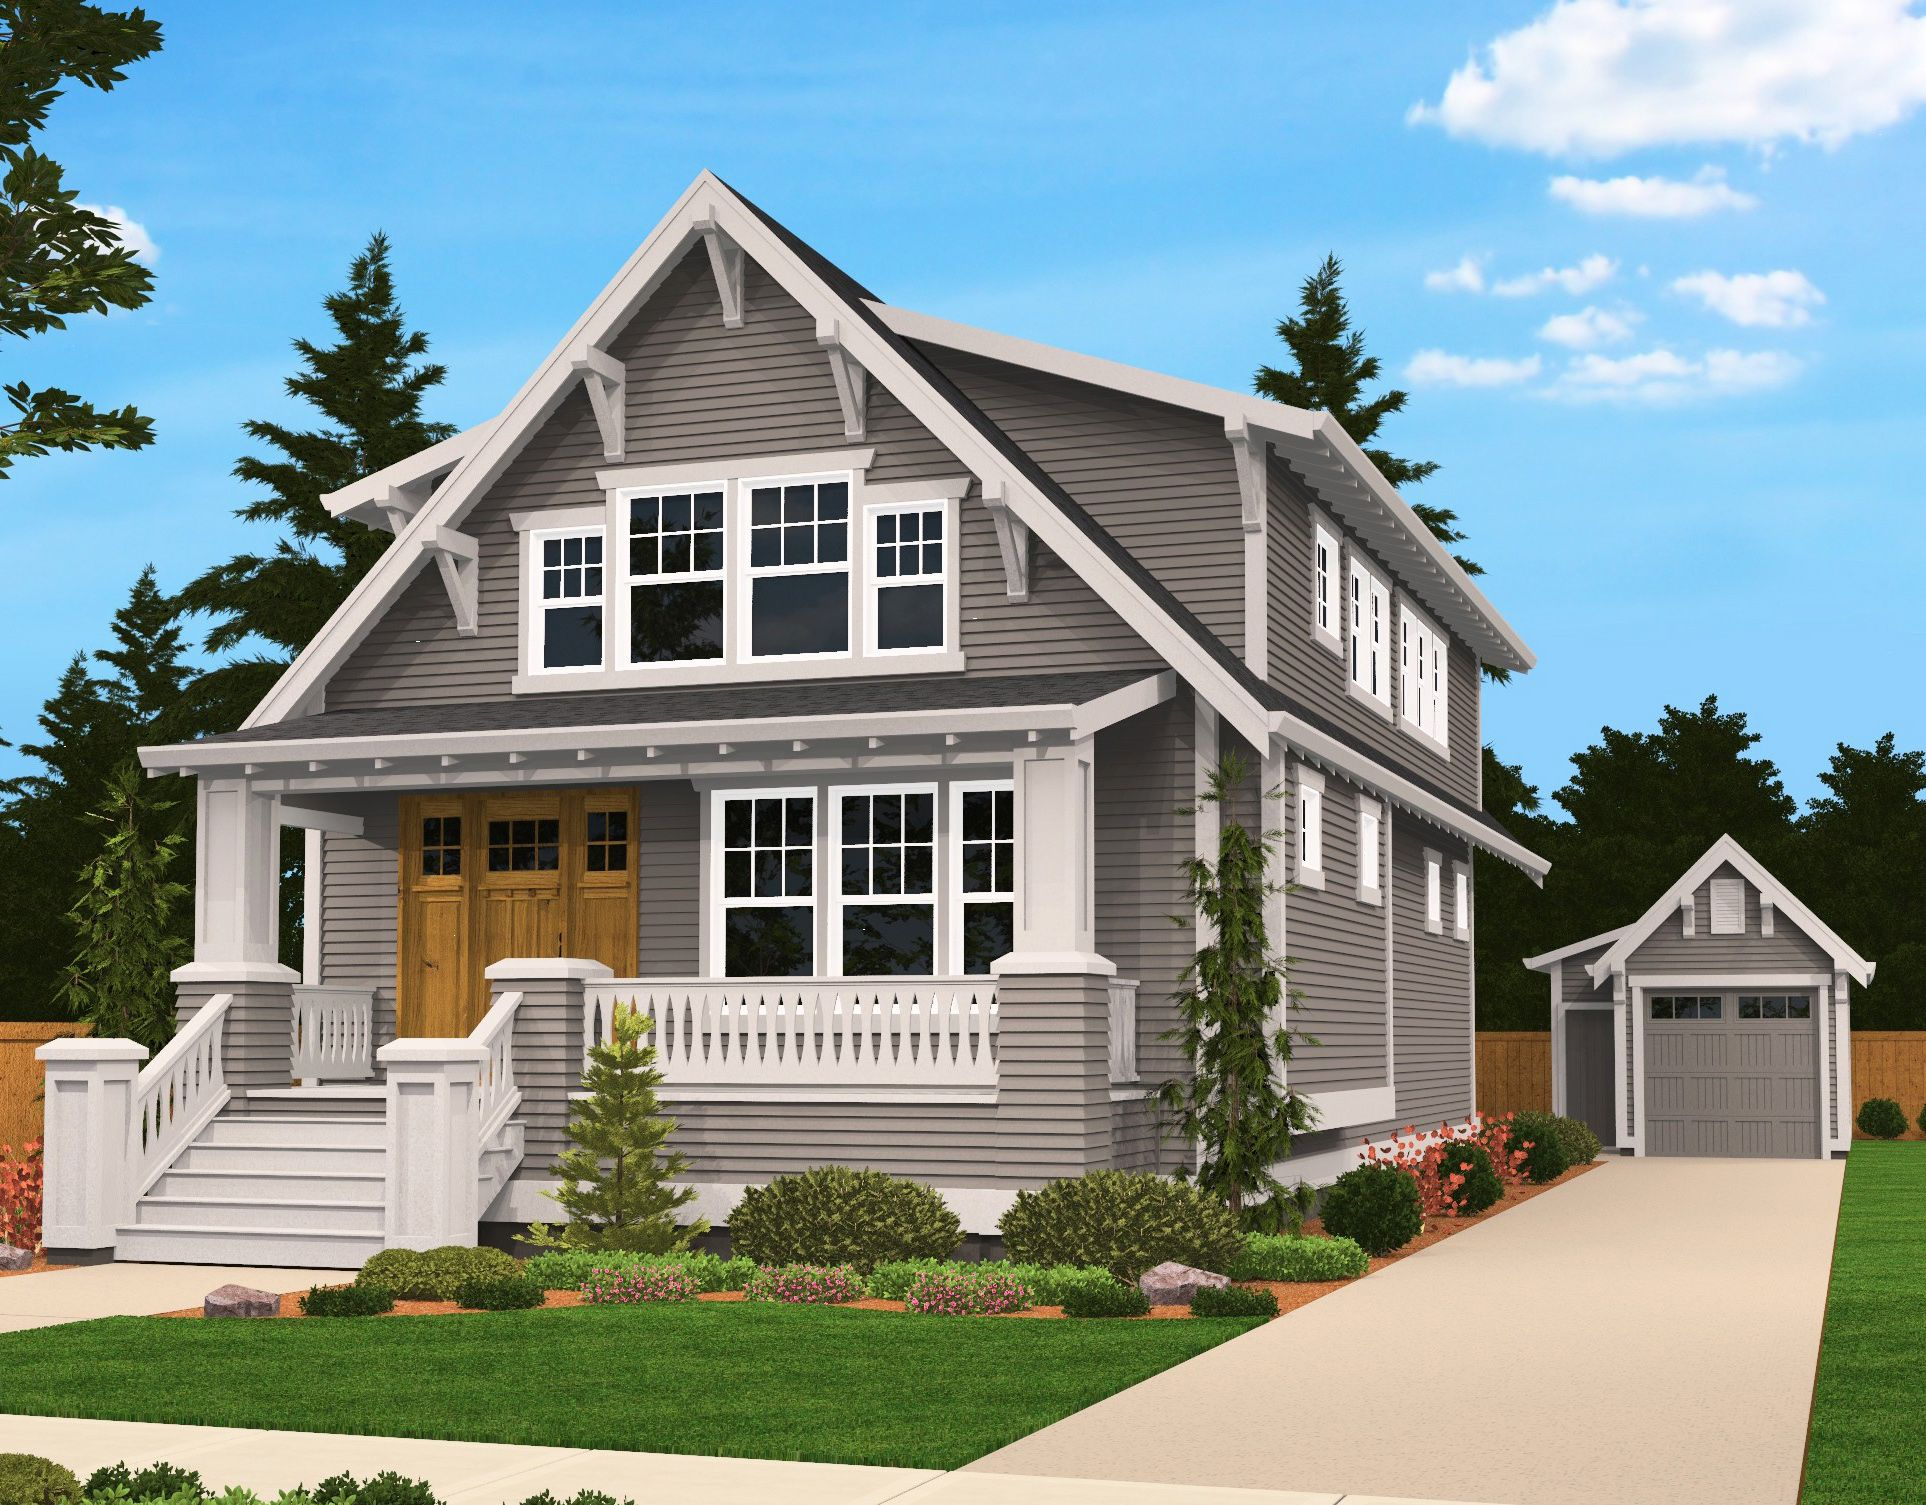 Plan 85058ms handsome bungalow house plan bungalow for Bungalow house kits